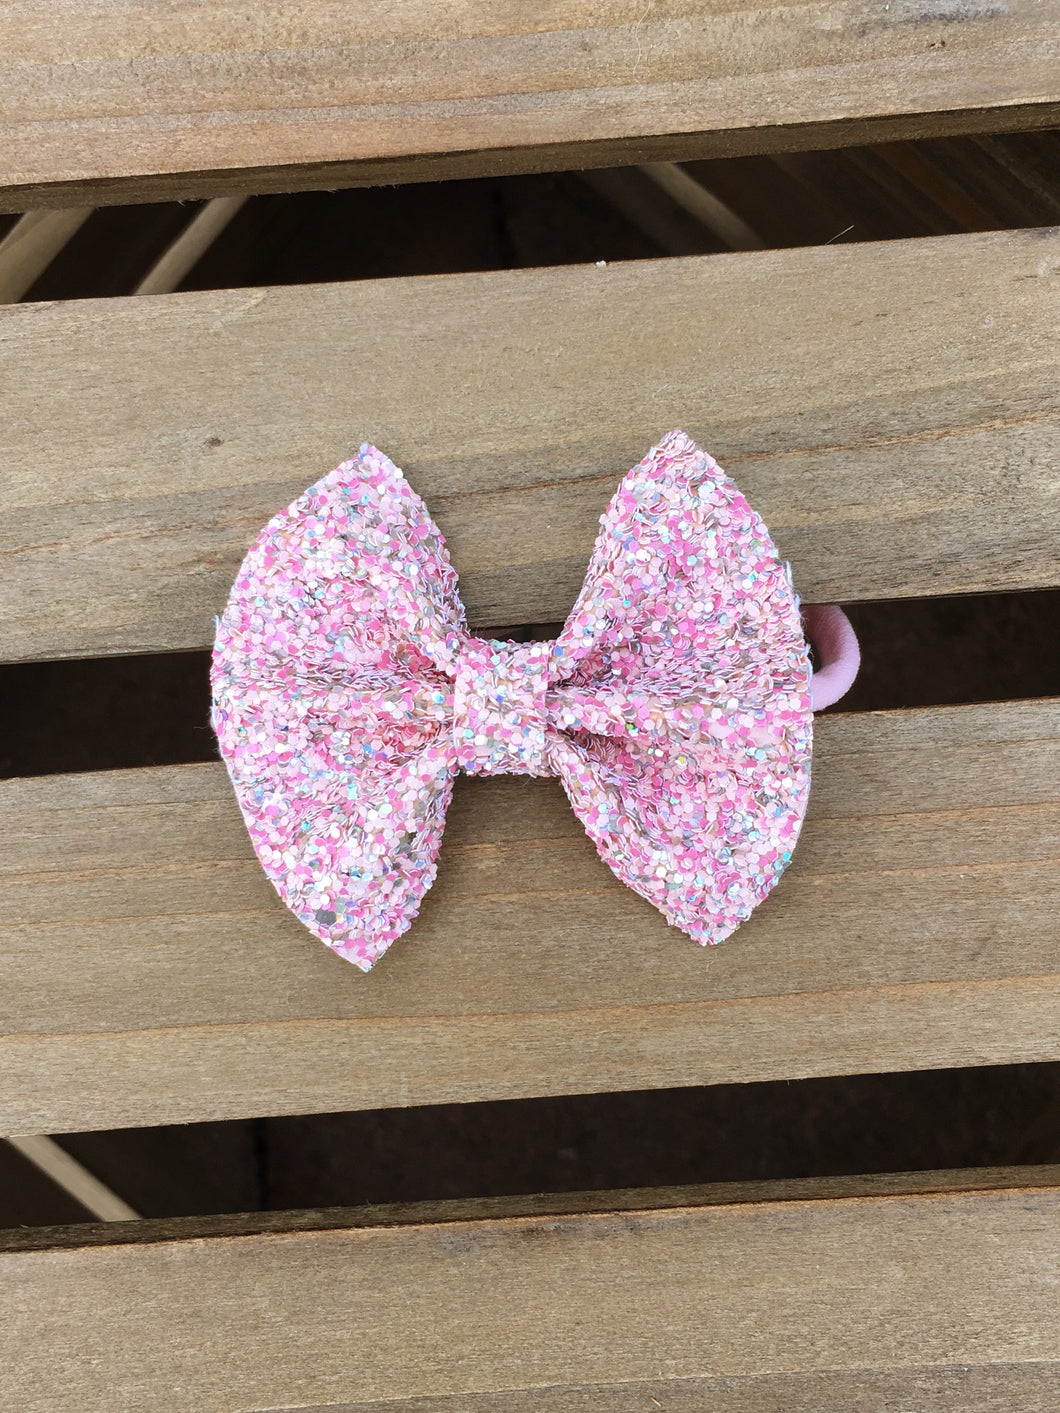 Amelia - pink glitter bow, pink bow, pink glitter headband, baby shower gift, baby girl shower gift, baby gift, baby accessories, toddler accessories